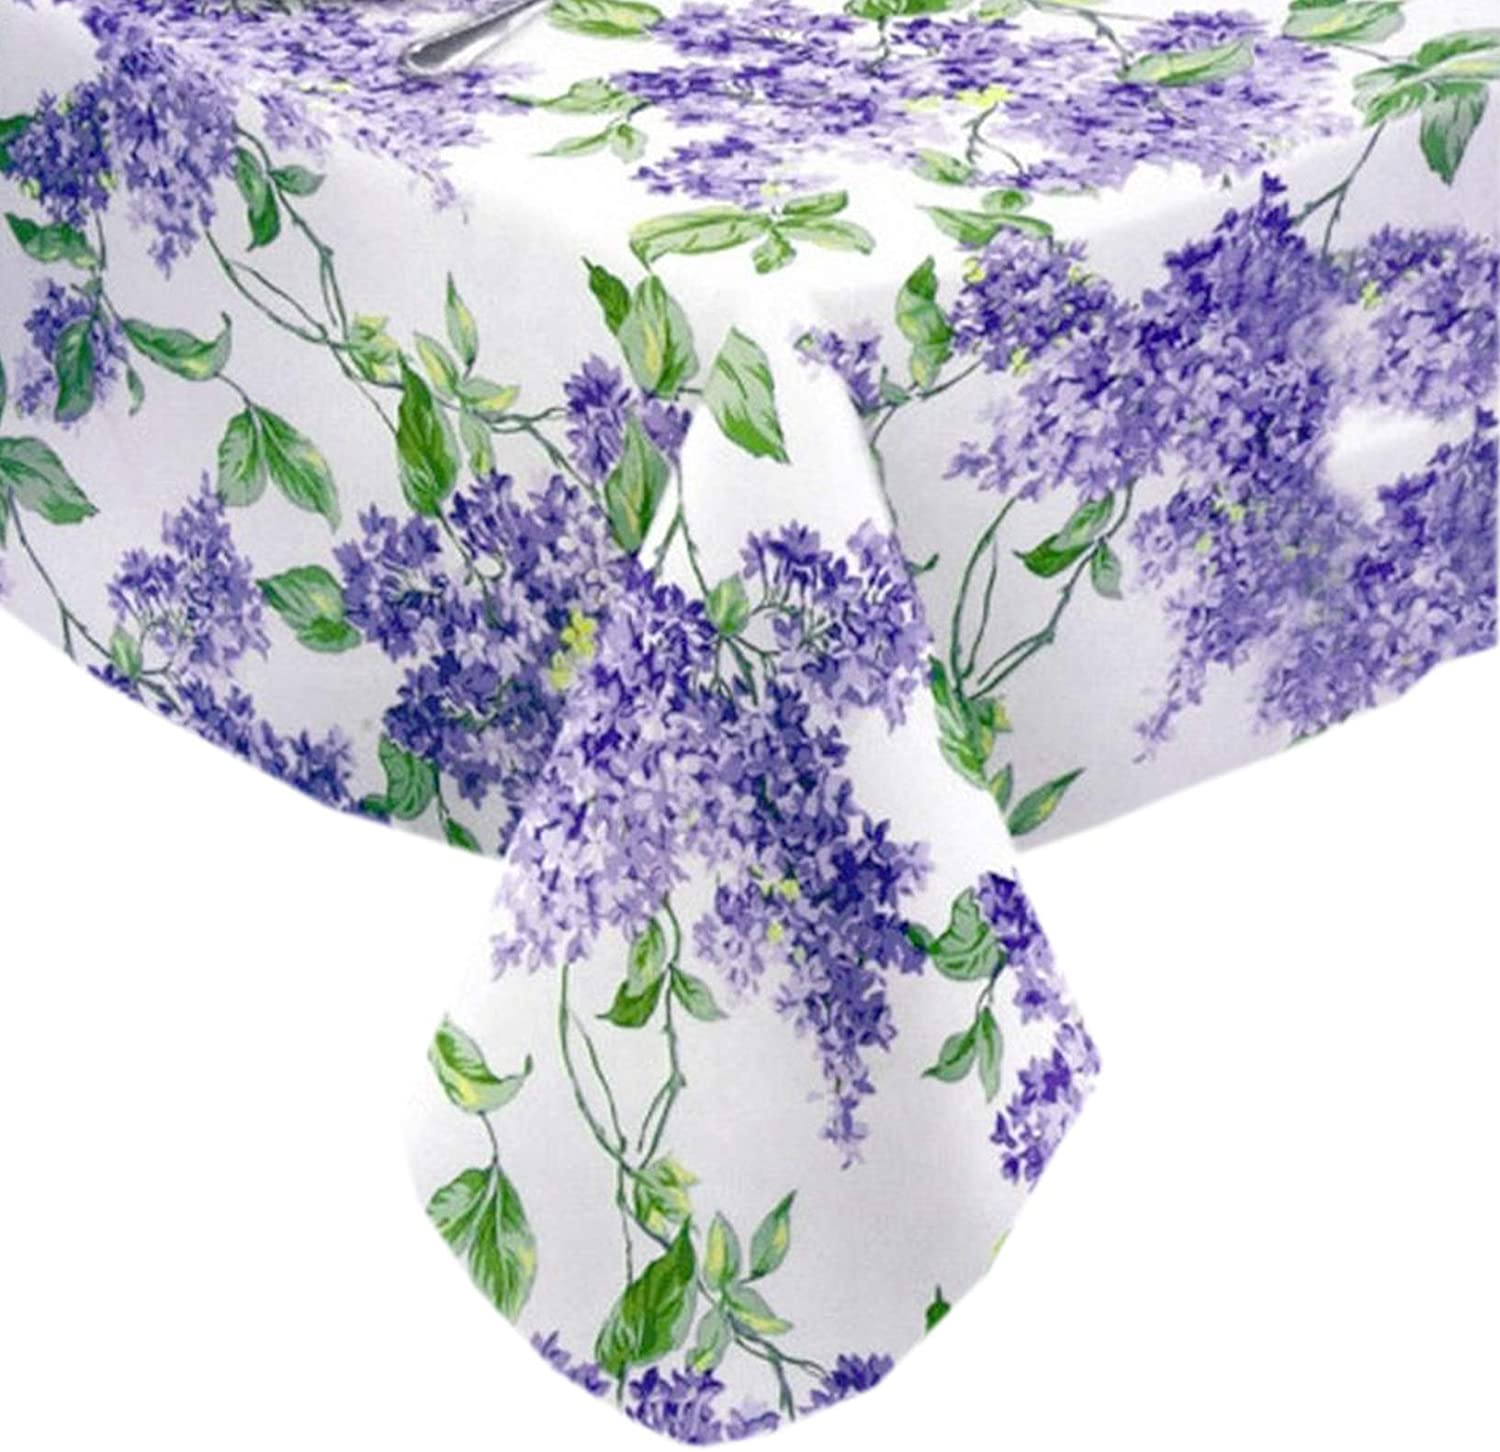 "Lilac Fields Heavy 4 Gauge Vinyl Flannel Backed Tablecloth, Purple Lilacs Floral Indoor/Outdoor Wipe Clean Picnic, Kitchen, Dining Room Tablecloth - 60"" x 104"" Oblong/Rectangle"